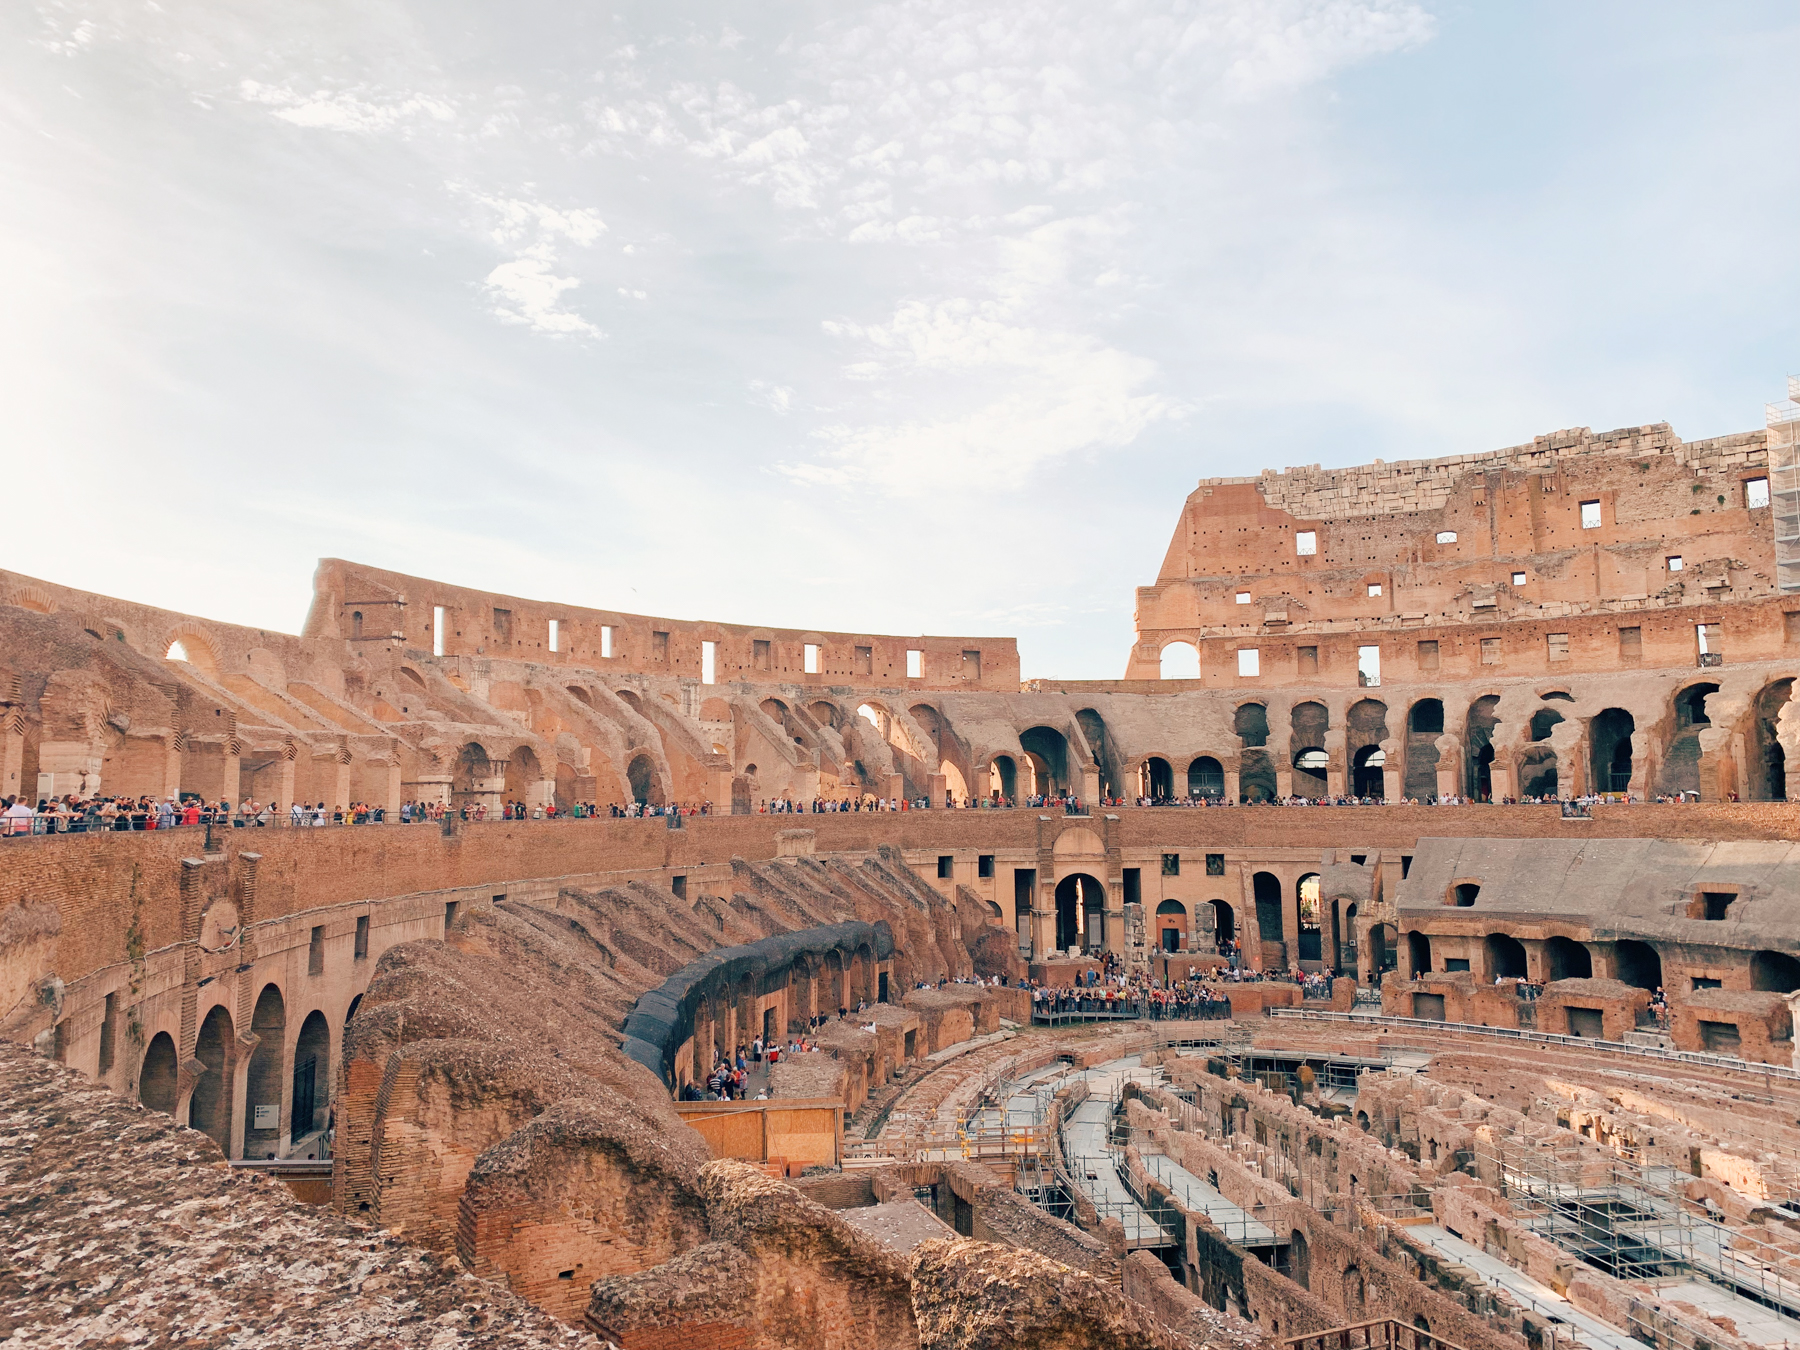 View from inside the Colosseum.